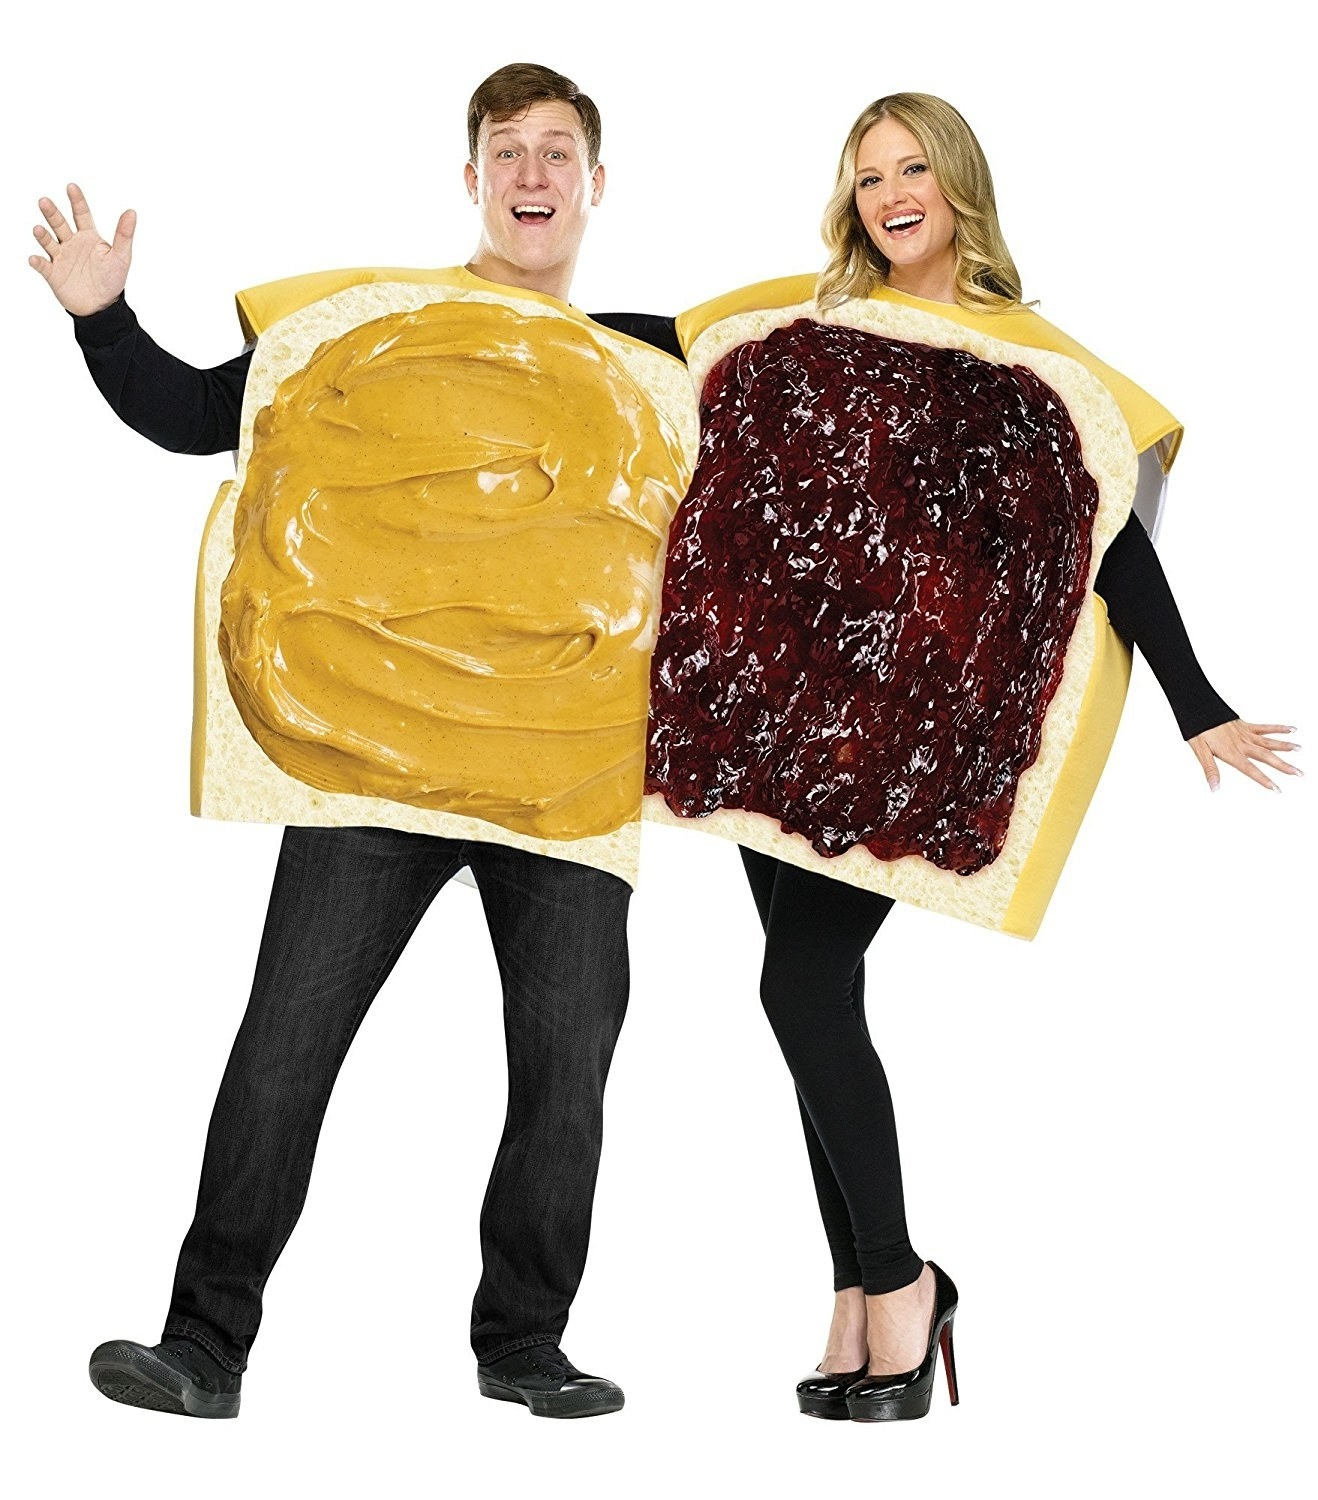 model wearing the peanut butter bread top and another model wearing the jelly side